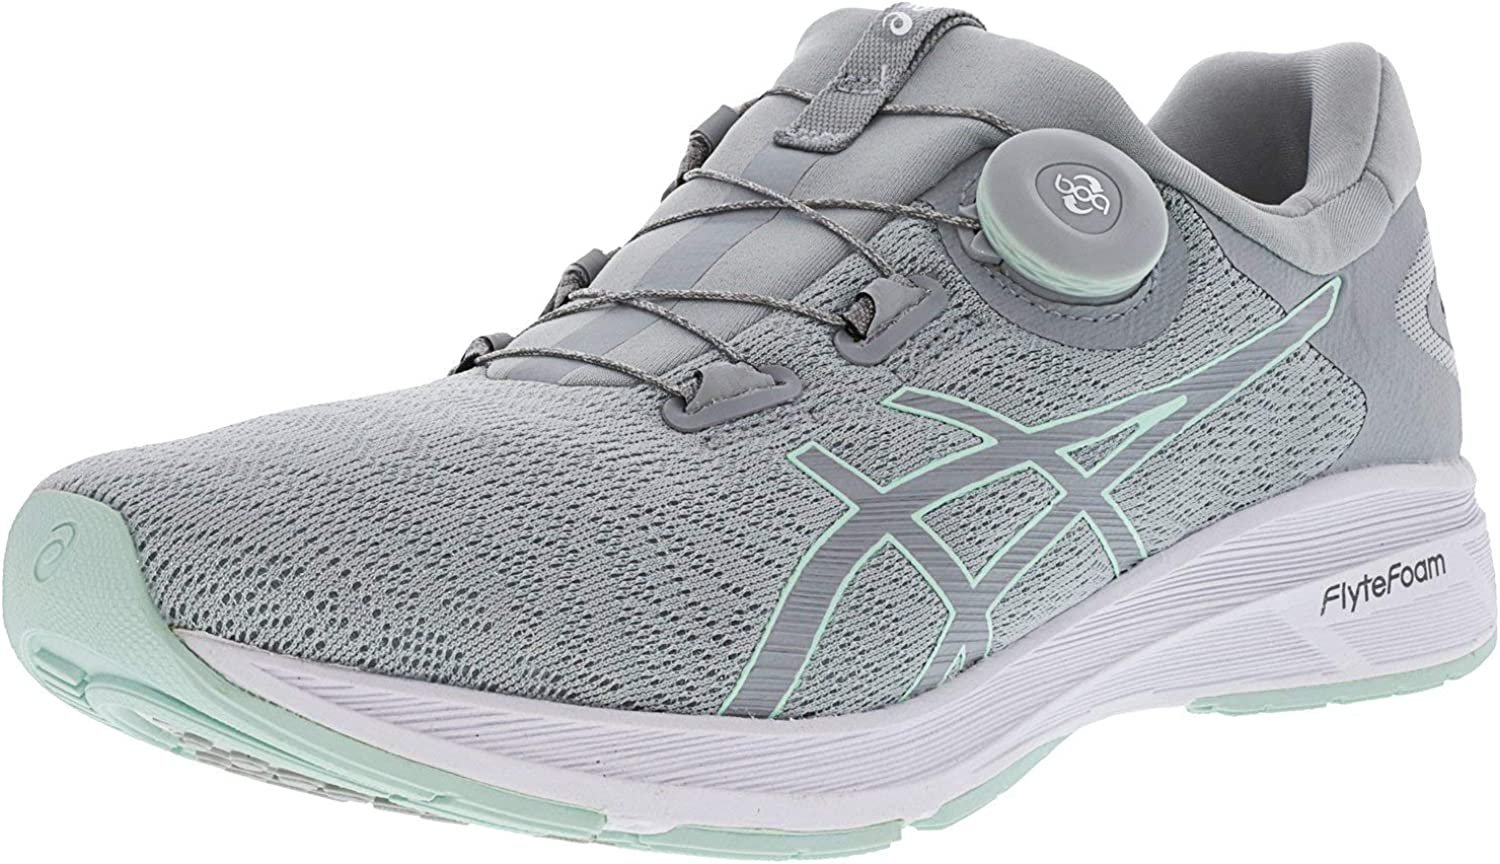 ASICS Womens Dynamis Running Athletic Shoes,